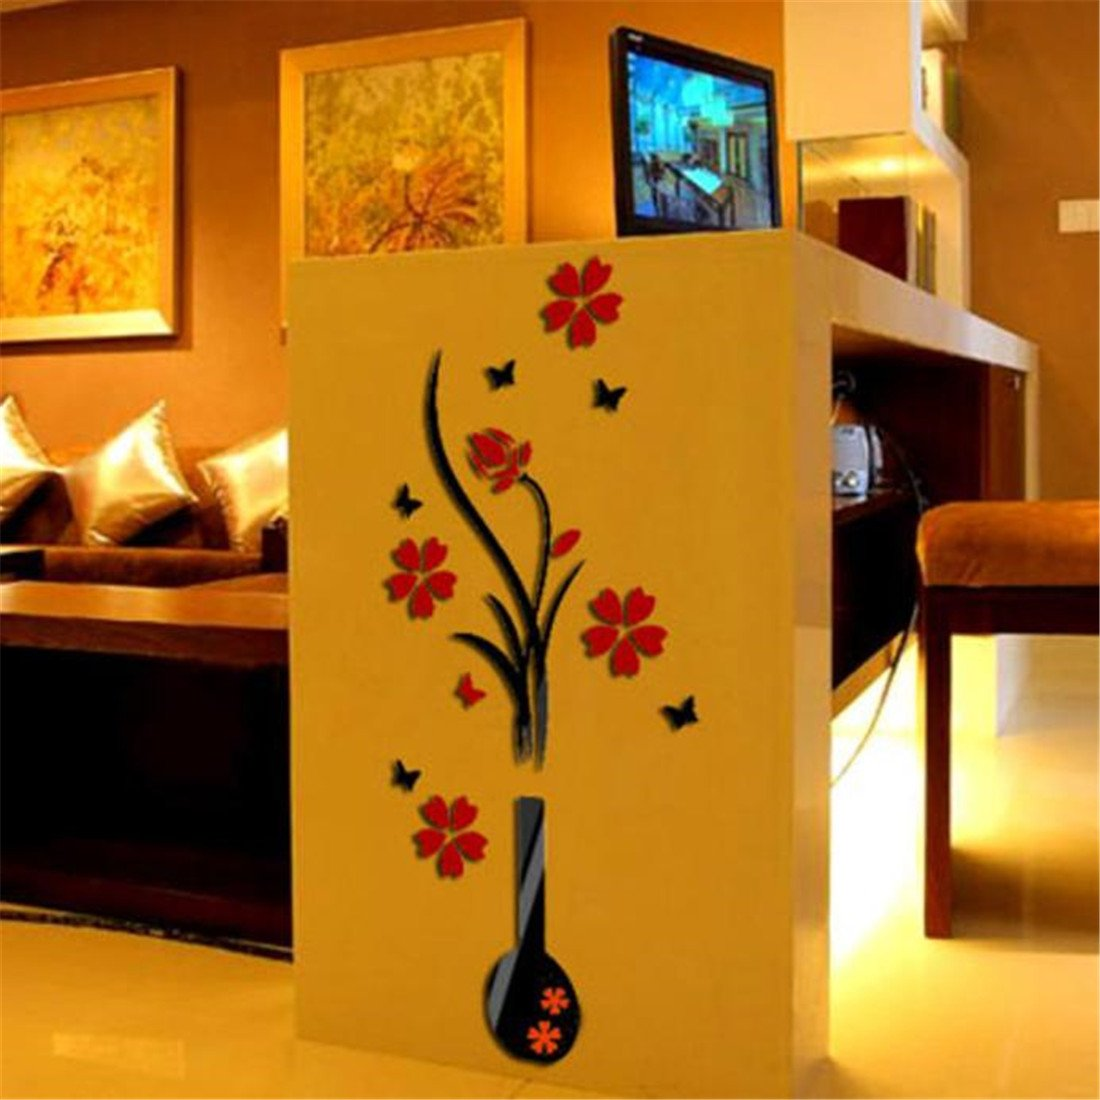 Wall Stickers Brezeh Wall Paper Eye-catching DIY Vase Flower Tree Crystal Arcylic 3D Wall Stickers Decal Home Decor